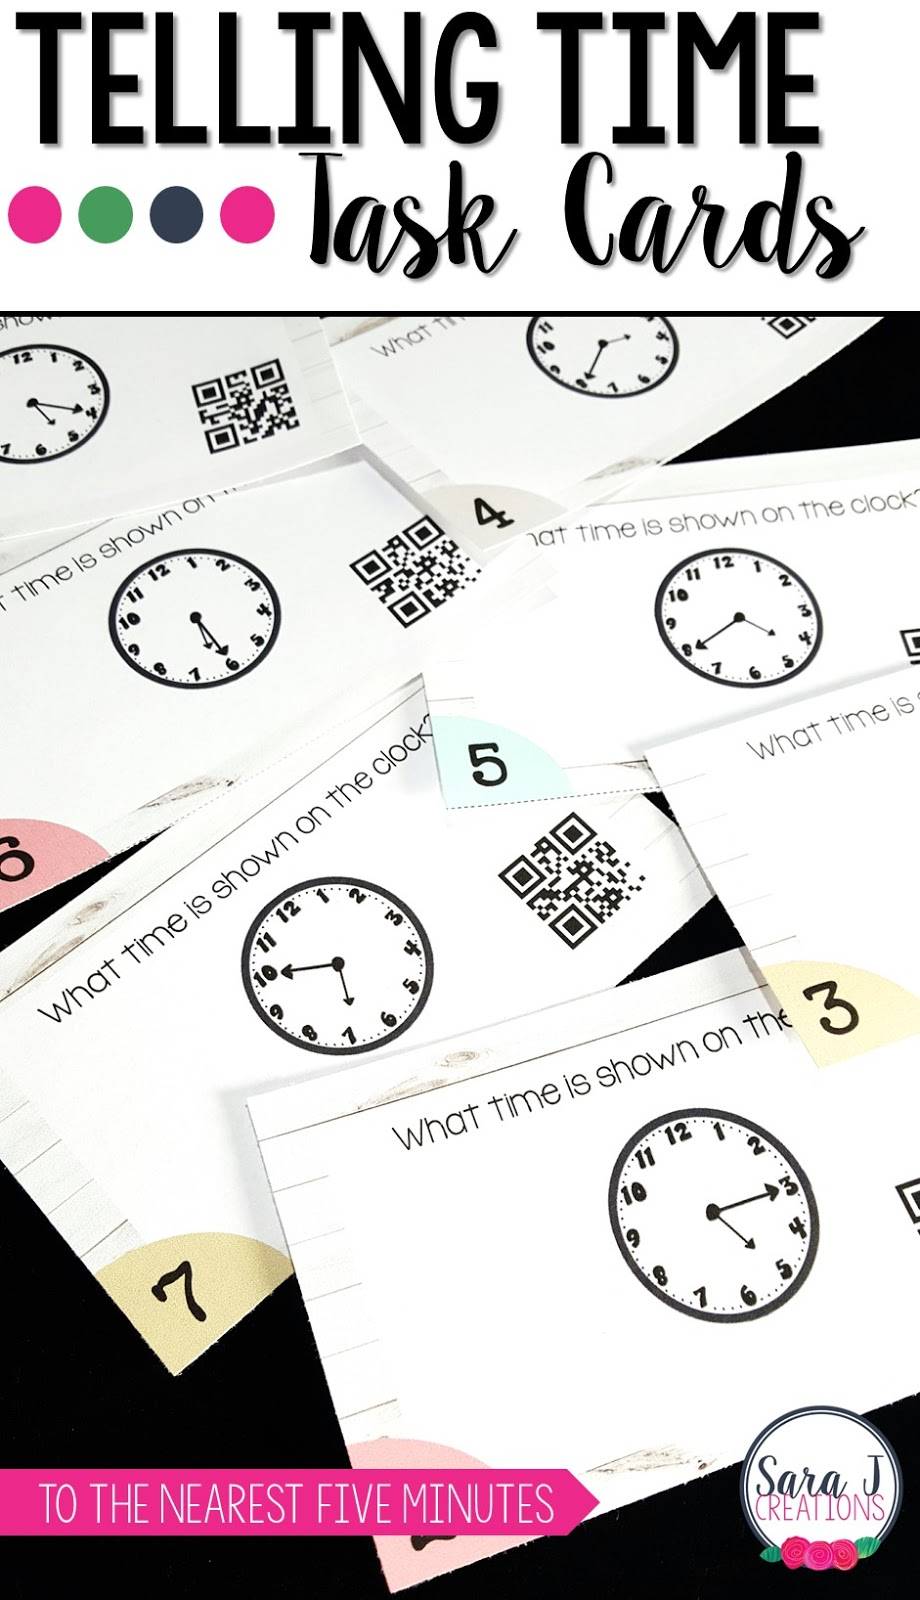 Telling time activities for first and second grade. Use these Task Cards to practice time to the hour and half hour and the nearest 5 minutes. QR Codes included!